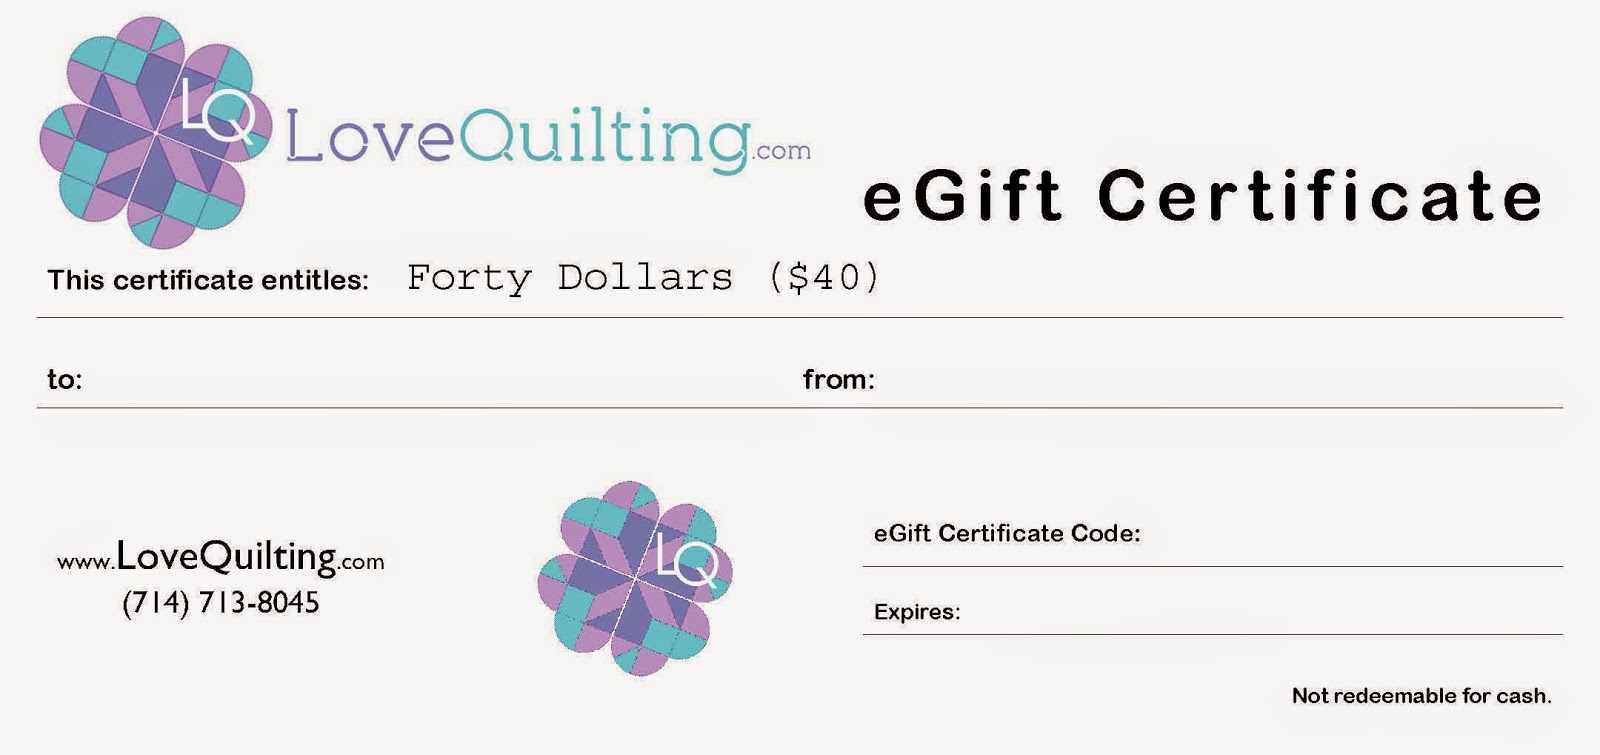 http://www.lovequilting.com/shop/accessories/40-egift-certificate/